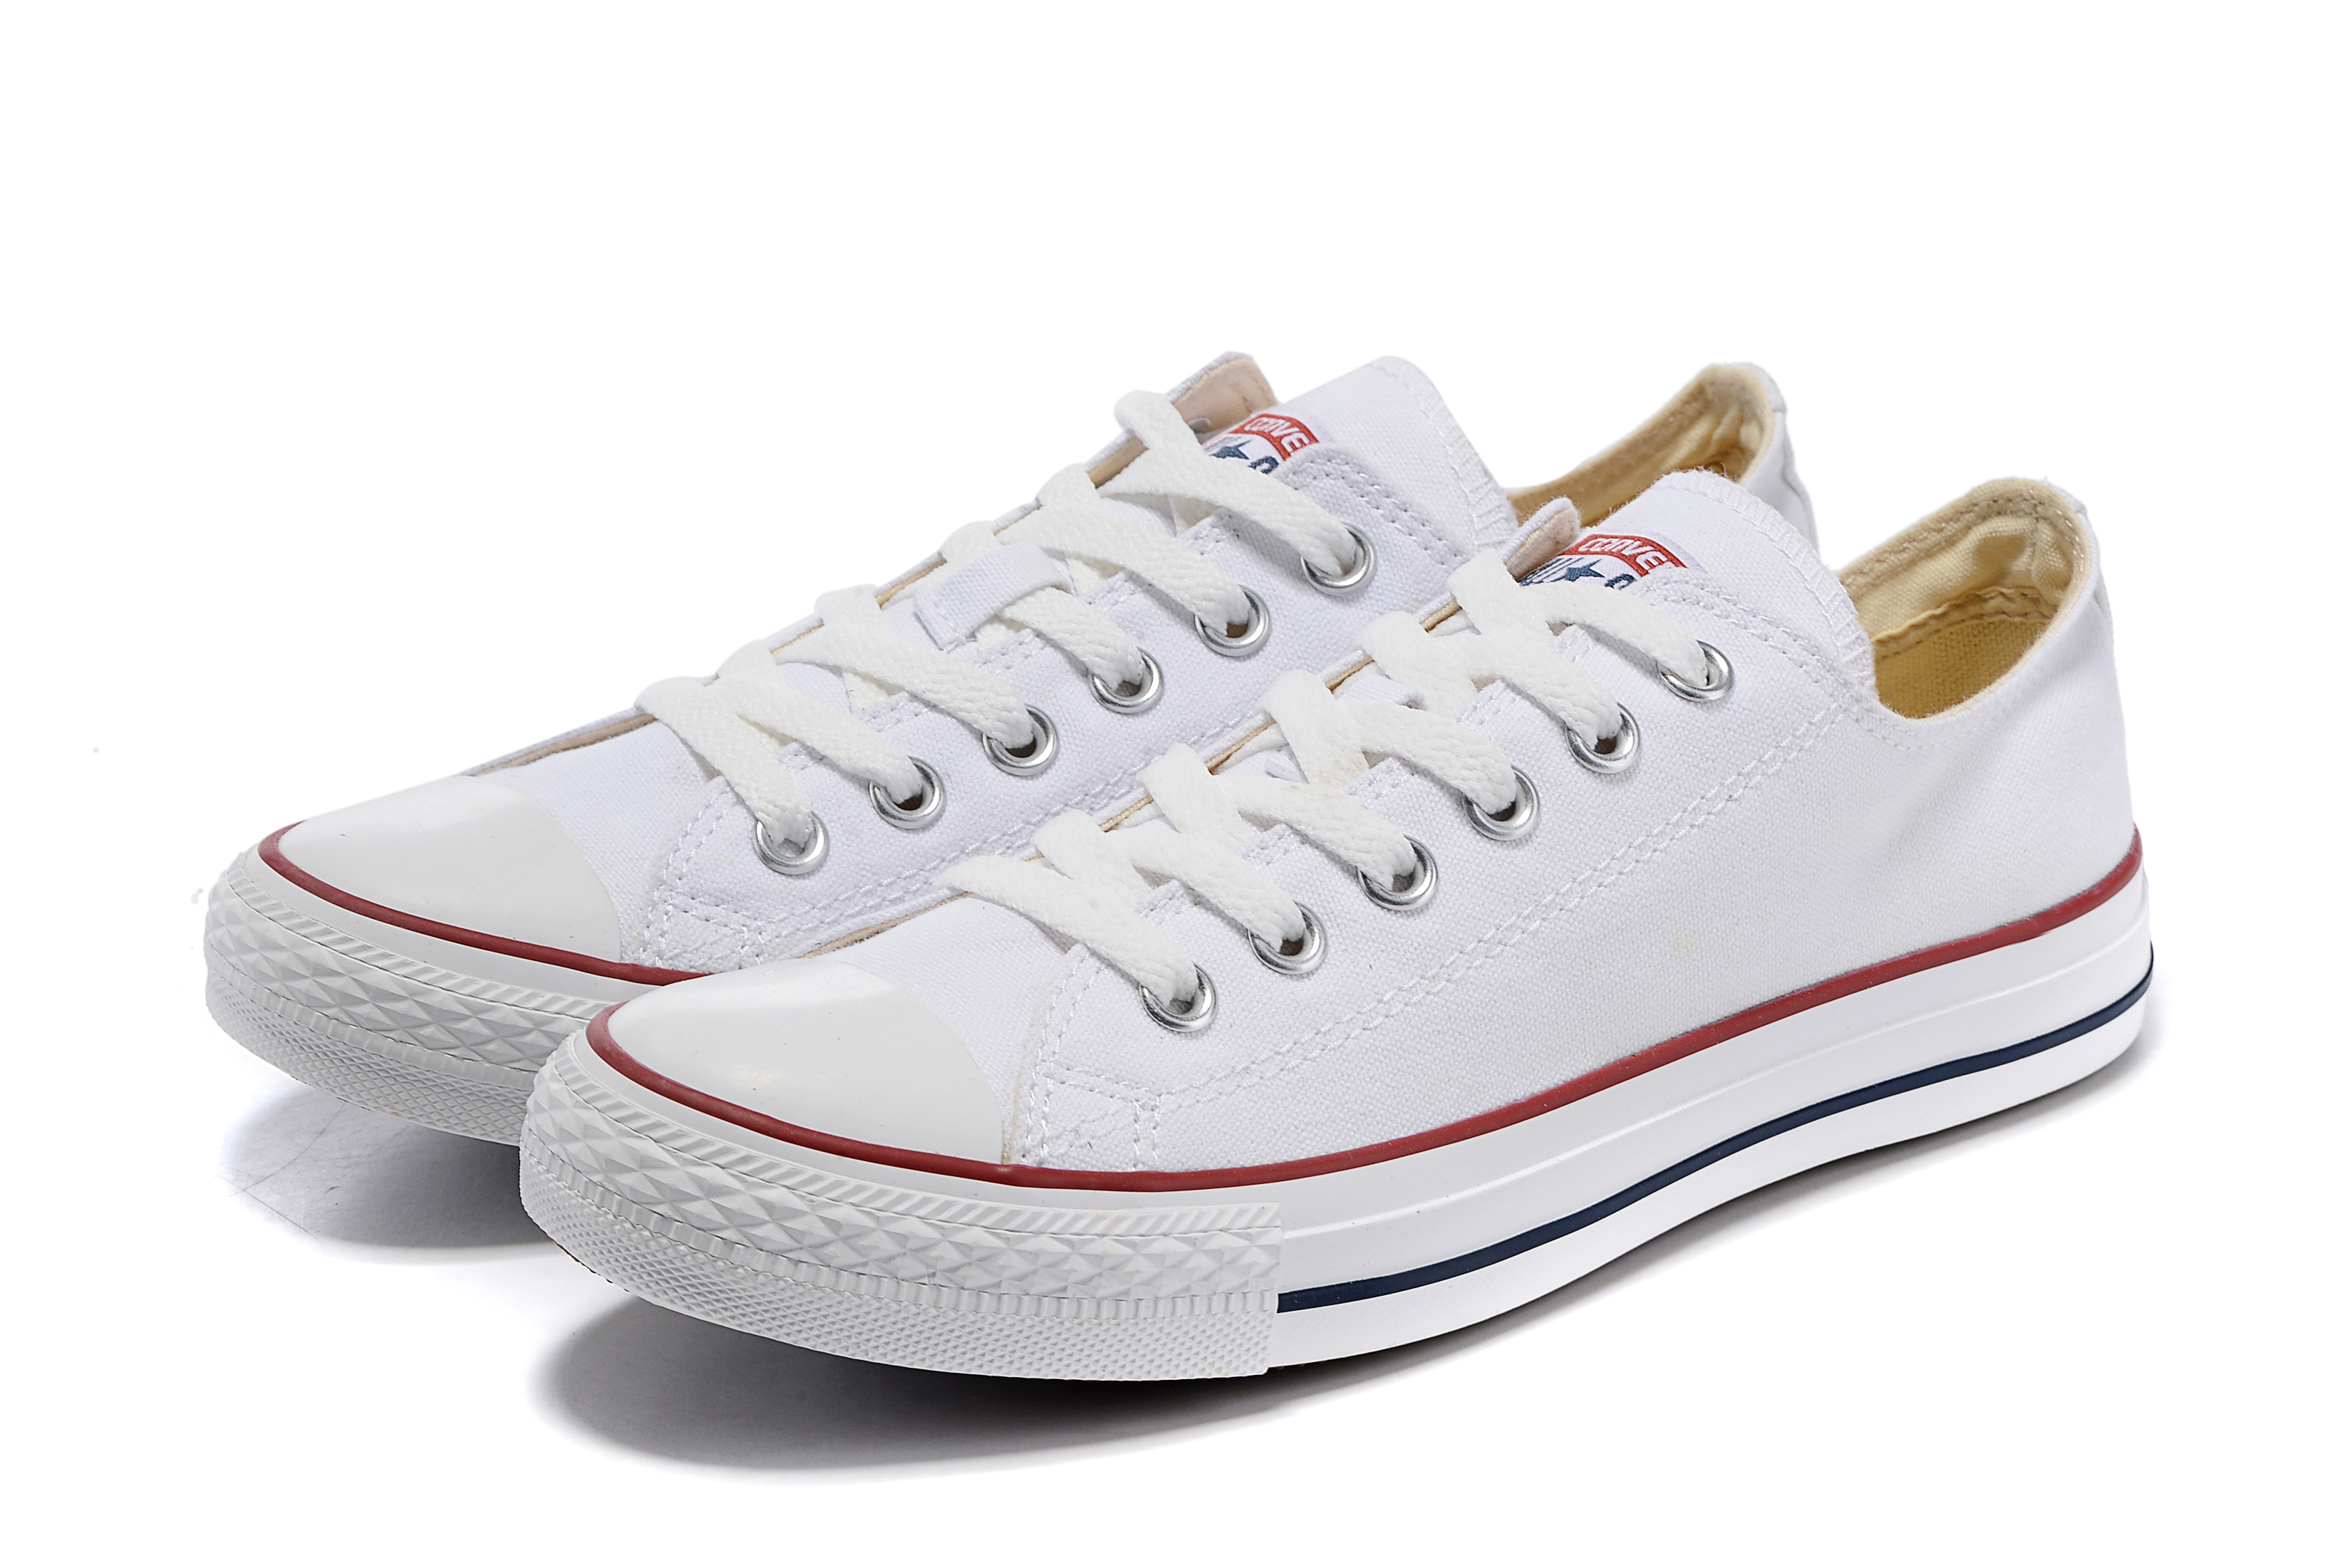 <font><b>Converse</b></font> <font><b>all</b></font> <font><b>star</b></font> canvas <font><b>shoes</b></font> <font><b>man</b></font> and women high and low classic sneakers Skateboarding <font><b>Shoes</b></font> image